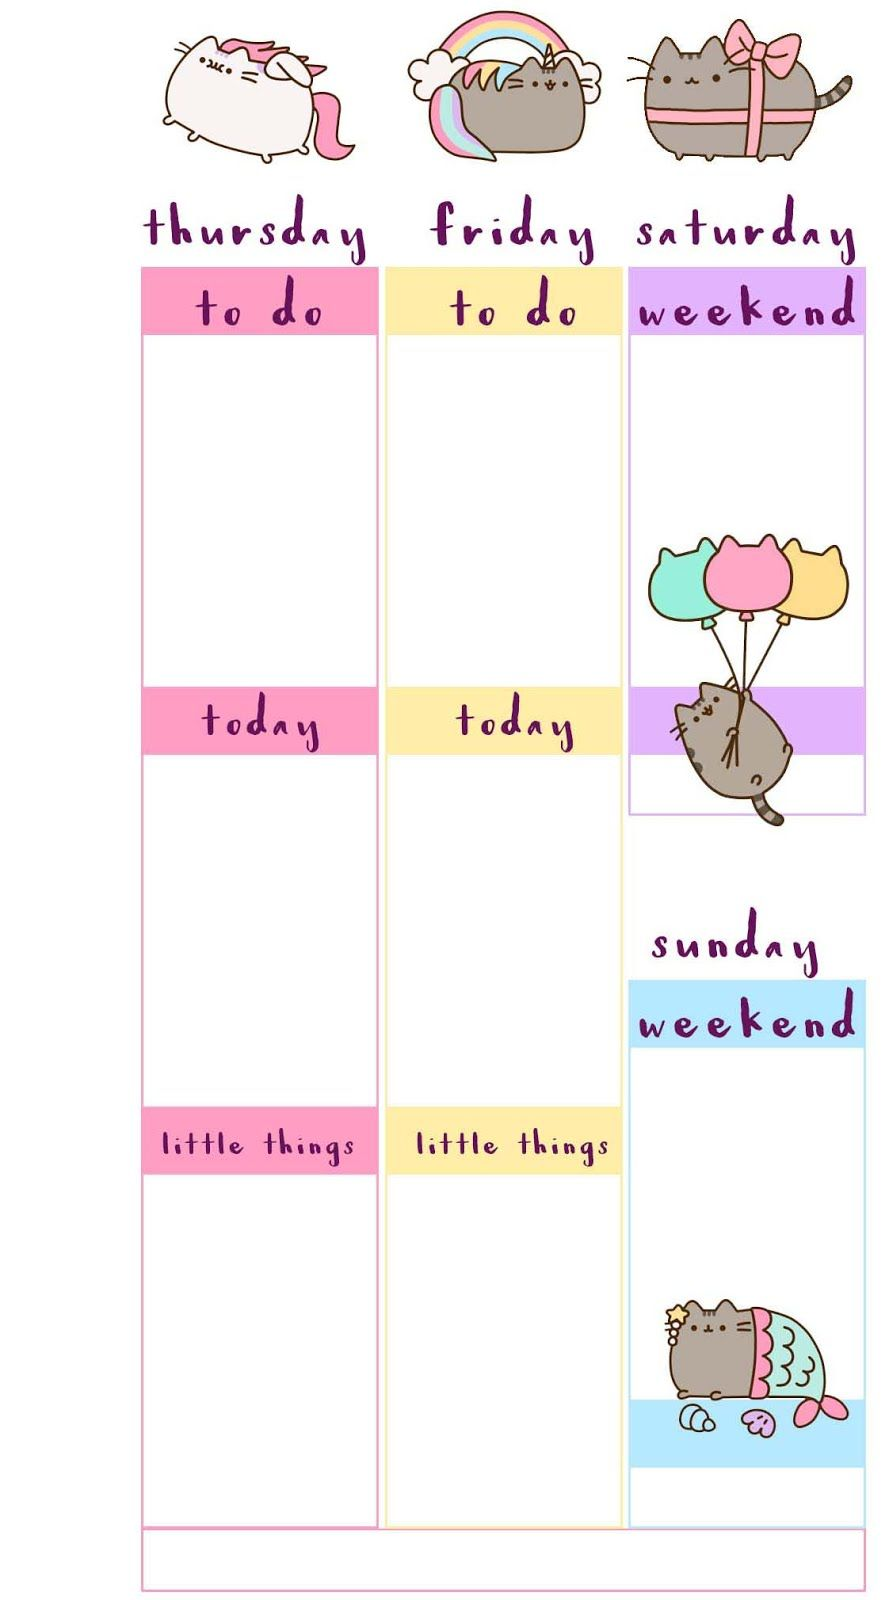 PB And J Studio: Free Printable Planner Inserts | Pusheen Inspired | Week  On 2